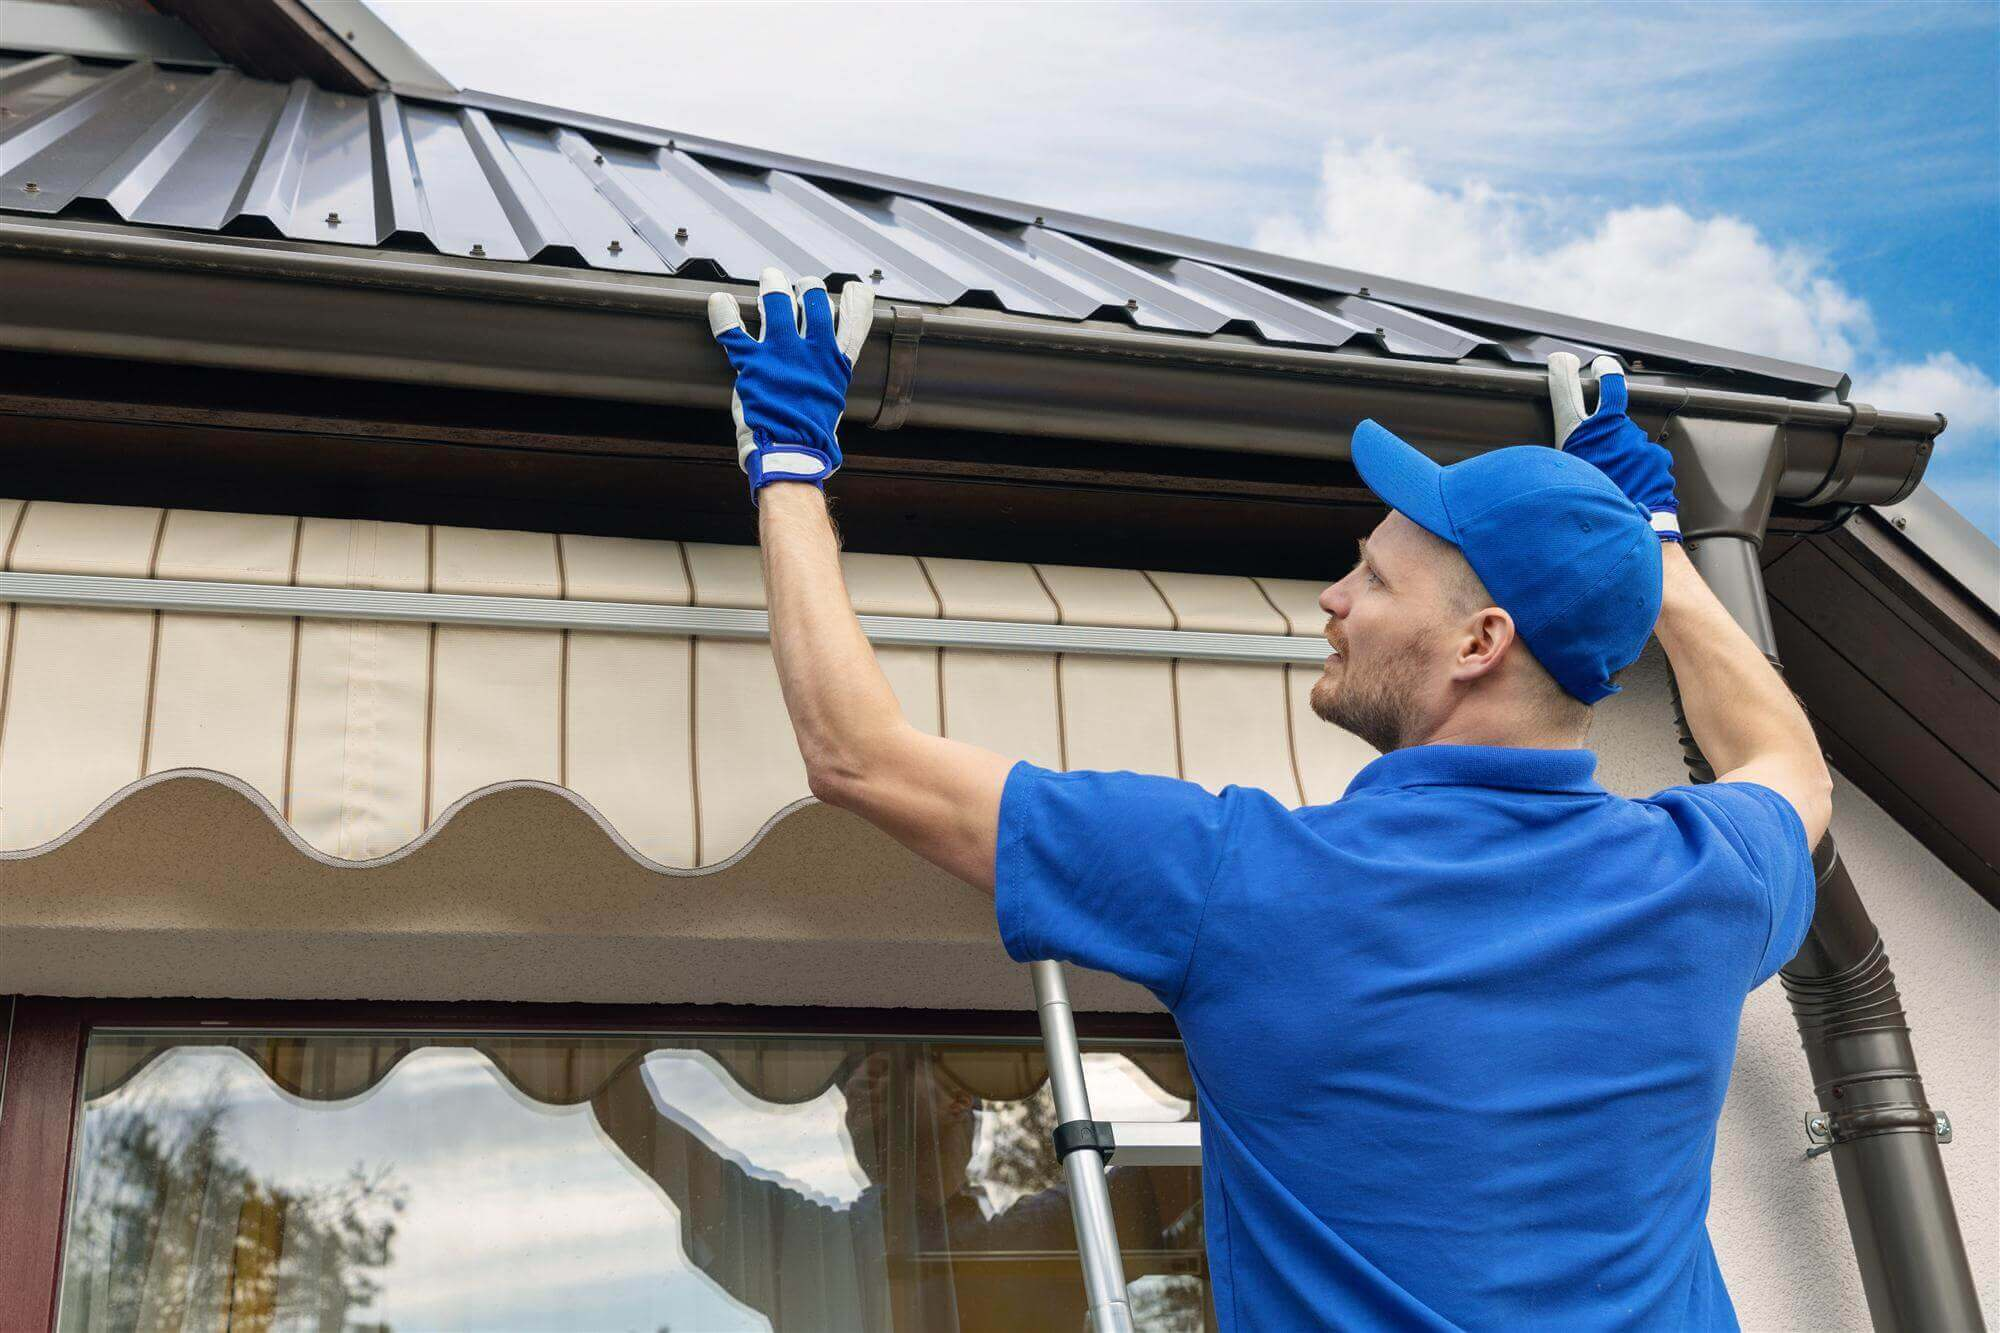 Howard Gutter Installation and repair company